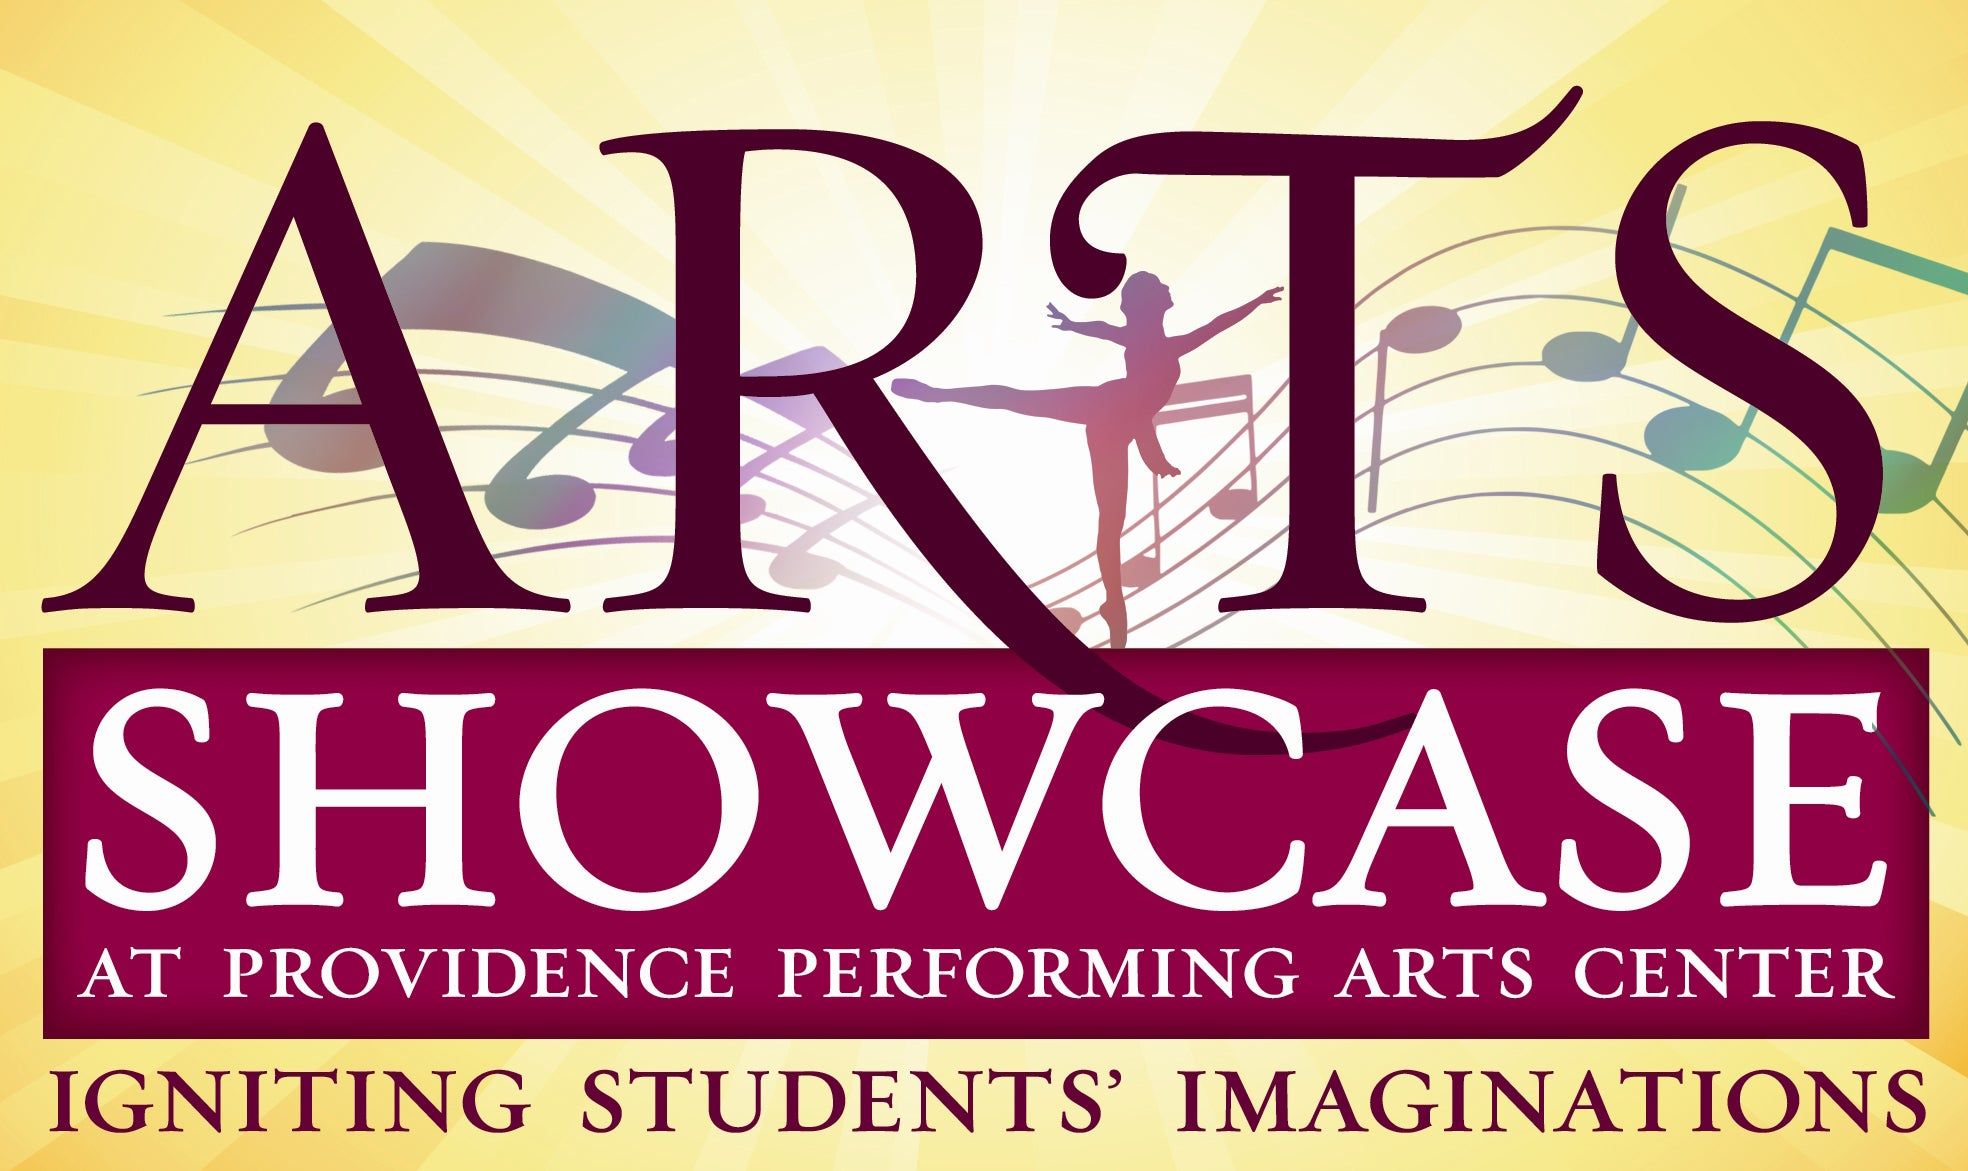 Arts Showcase at Providence Performing Arts Center. Igniting Students' Imaginations.